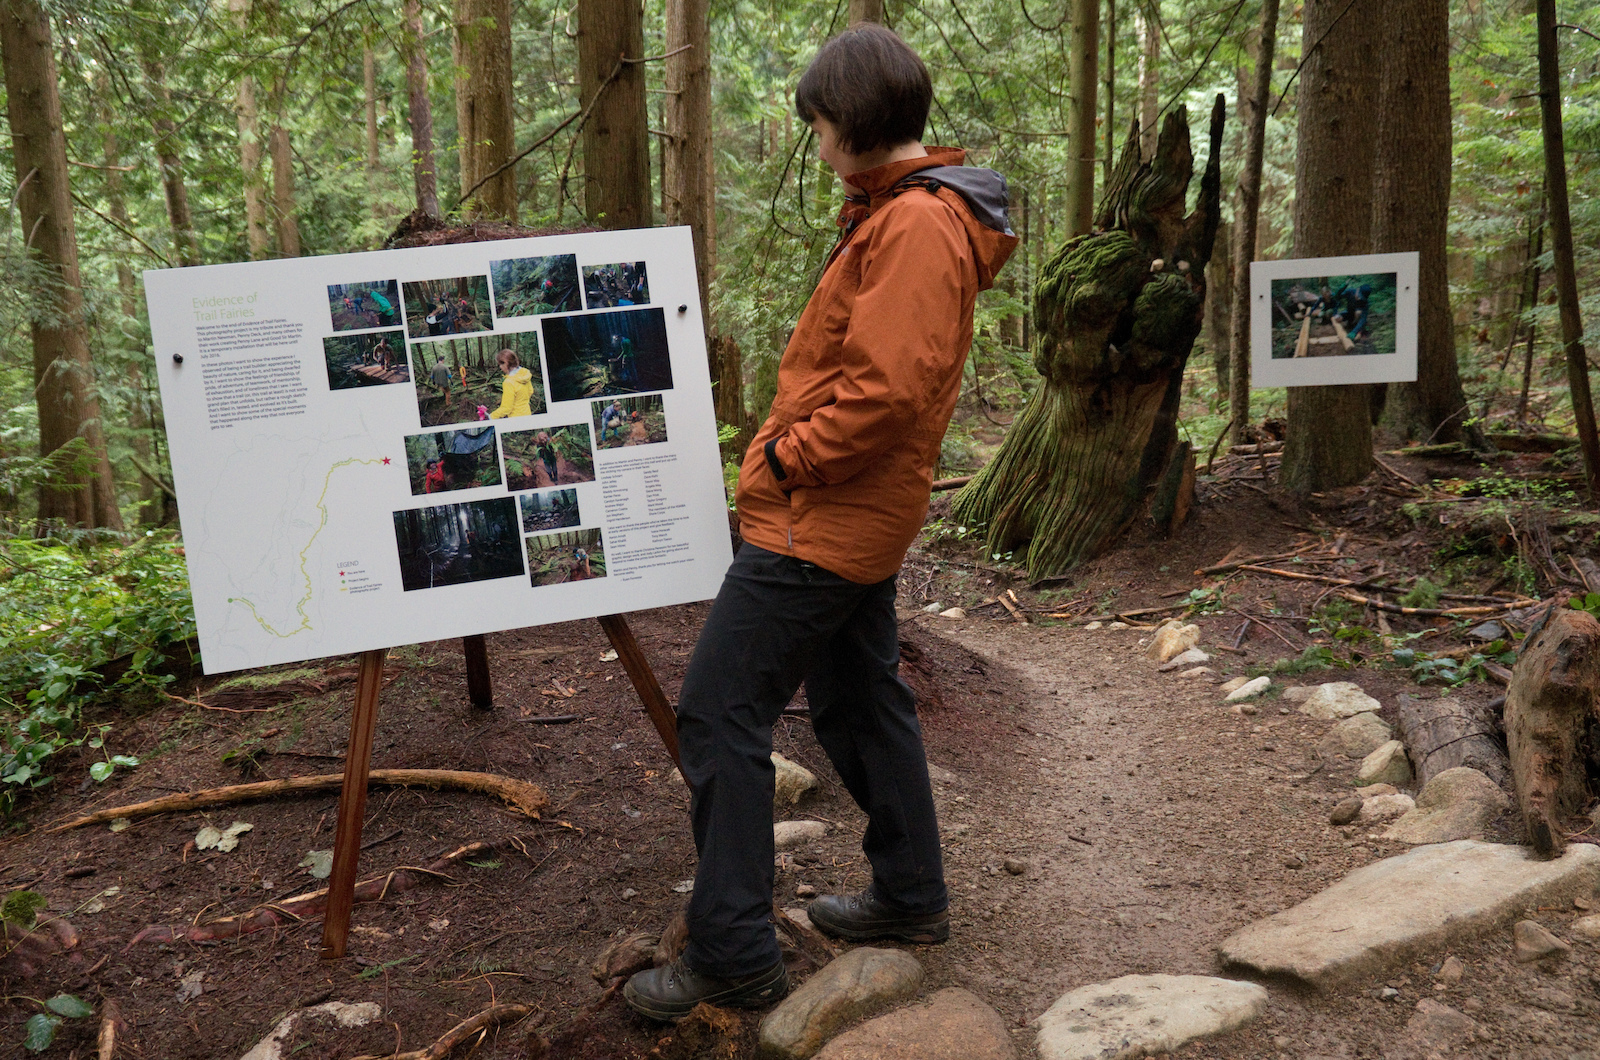 A hiker stops to read one of the informational posters we put along the installation. This is most common location for hikers and runners to first encounter the project and it s unfortunately at the end. So we included maps to help guide people to the beginning of the project so they can experience the entire thing.